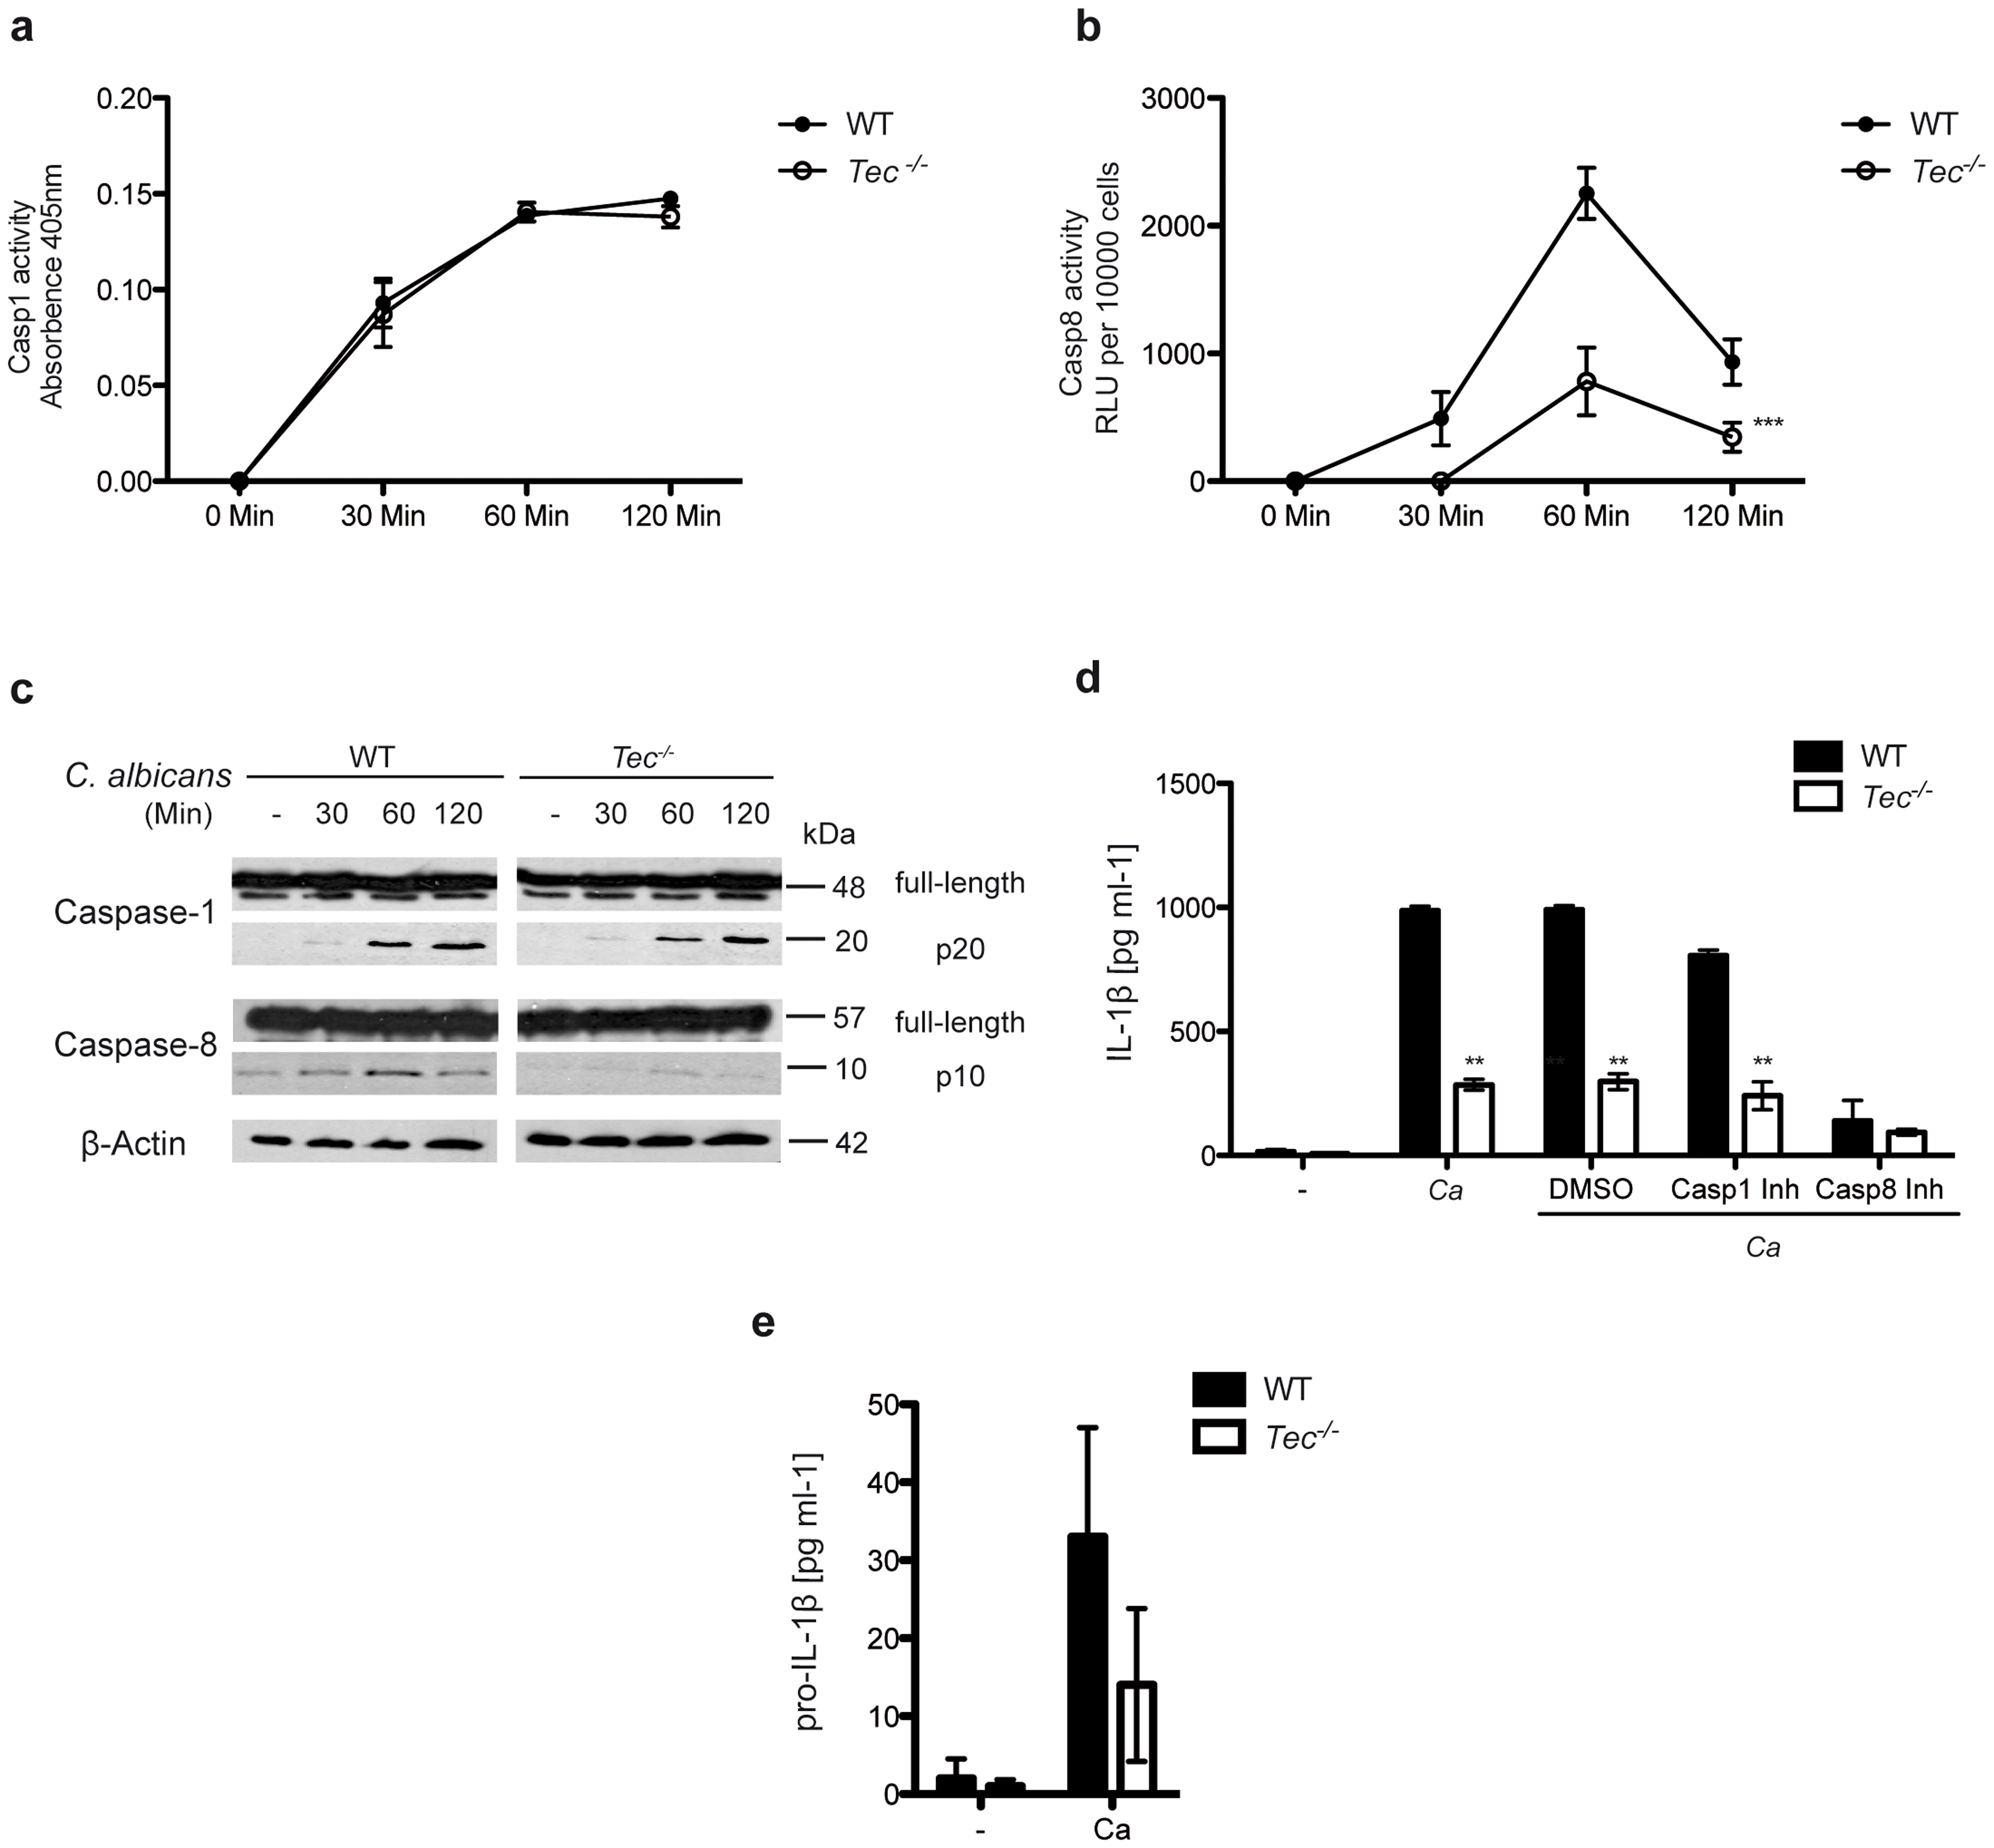 Caspase-8 activity in response to <i>C. albicans</i> requires Tec in BMMs.